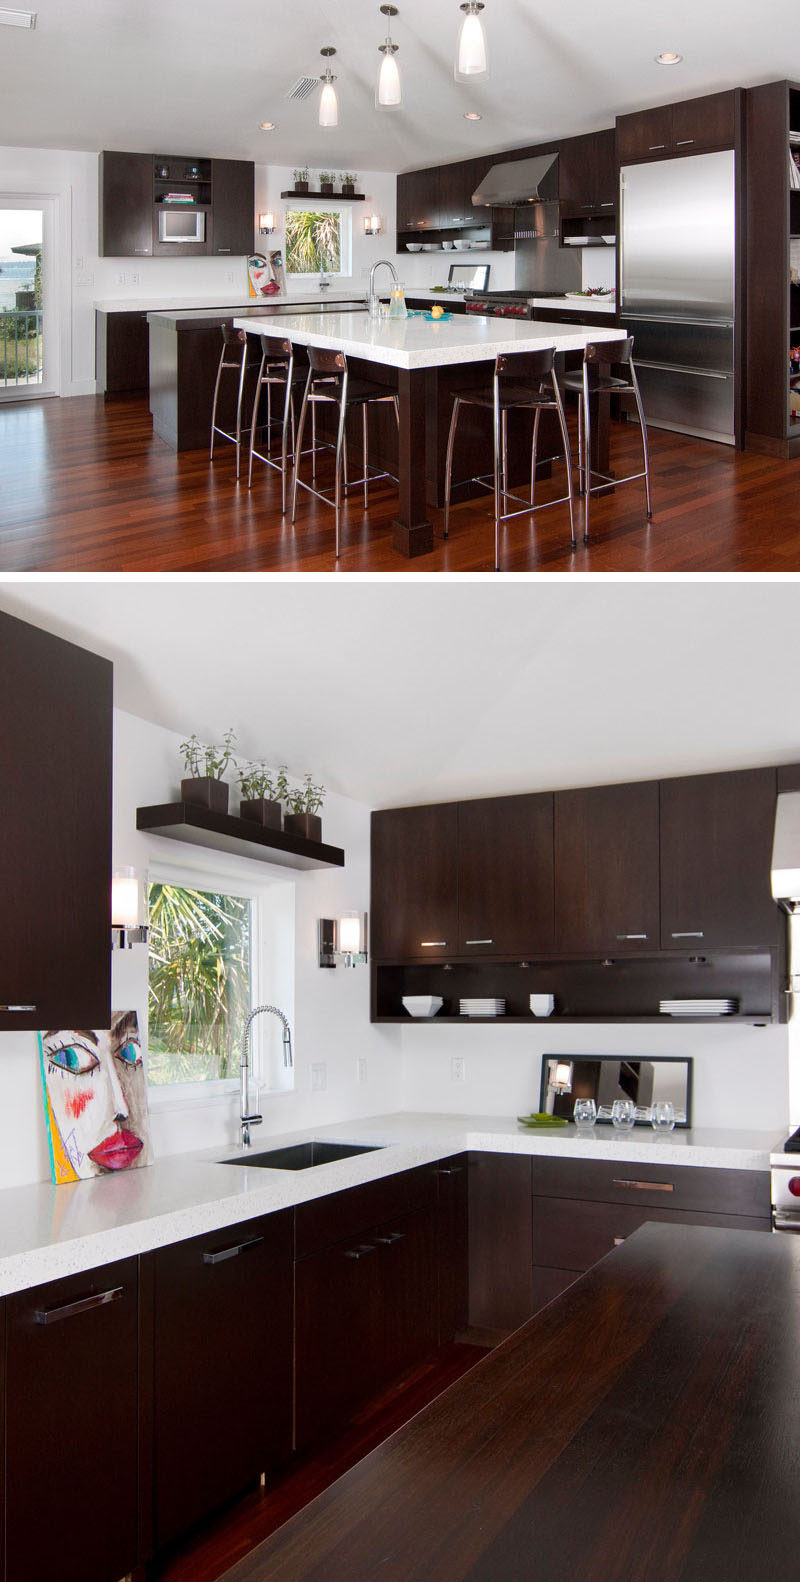 9 Inspirational Kitchens That Combine Dark Wood Cabinetry And White  Countertops // Despite The Dark